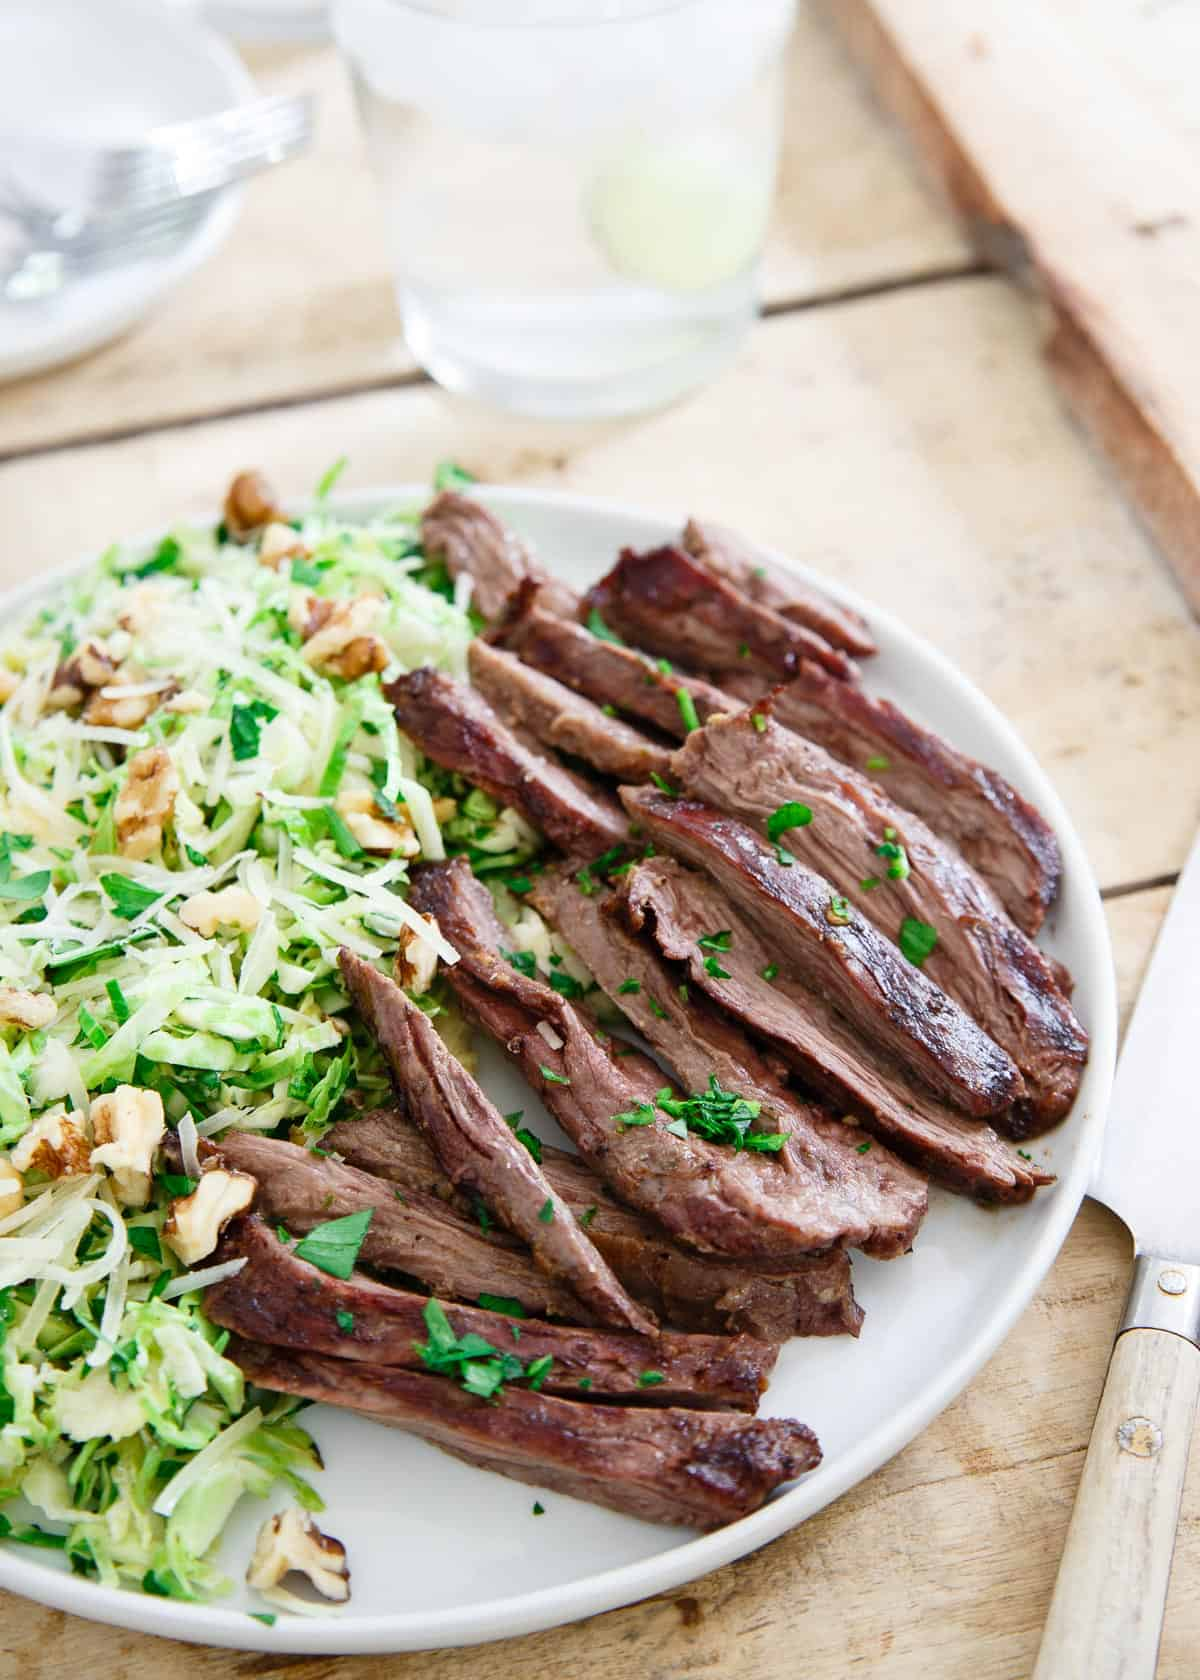 Grilled Skirt Steak with Brussels Sprouts Salad is a simple summer dinner that can be on the table in minutes.